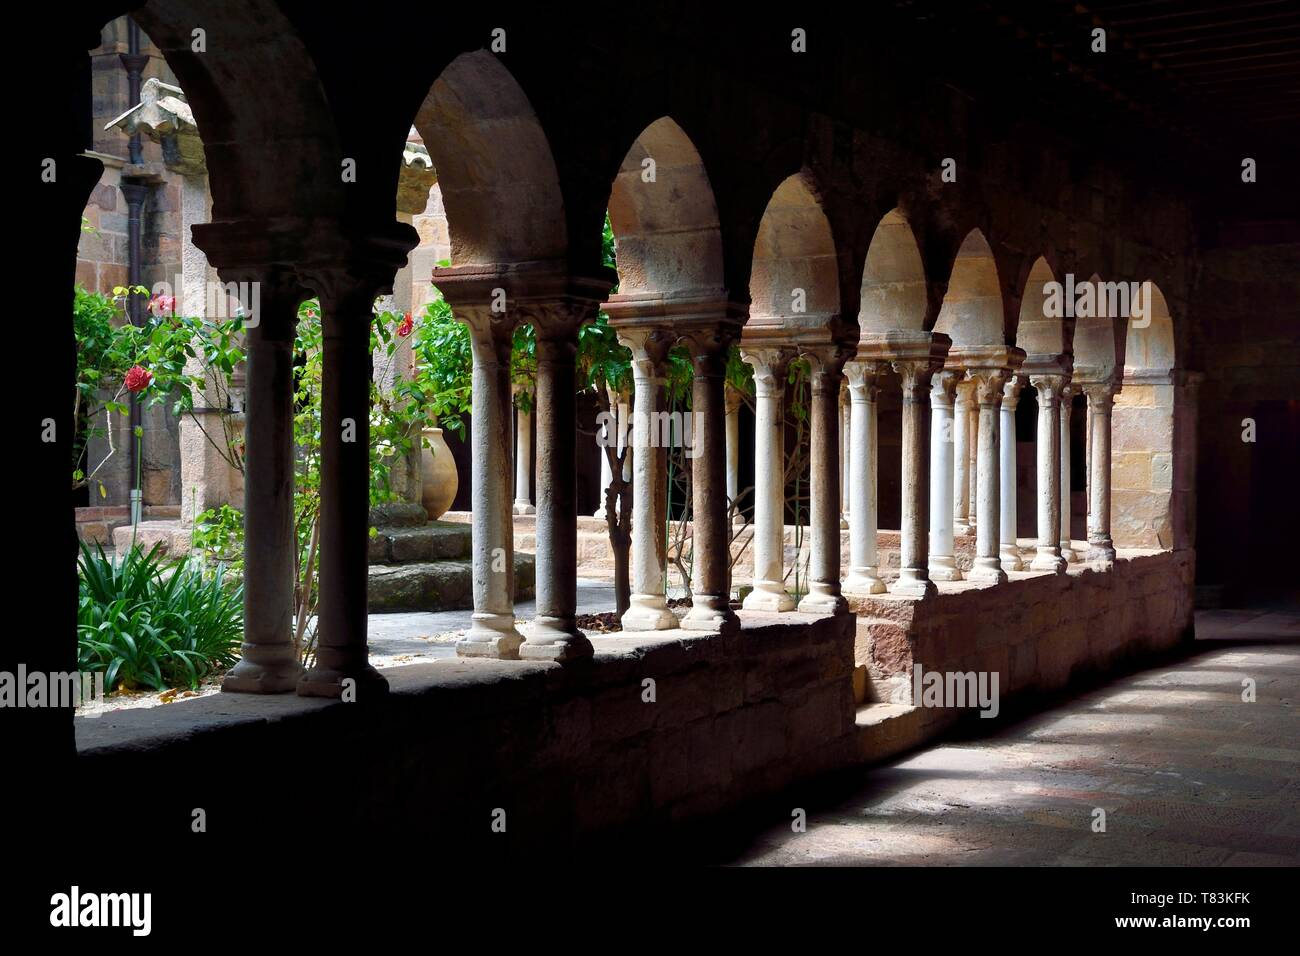 France, Var, Frejus, the St. Leonce cathedral (16th century), 12th century canonical cloister - Stock Image